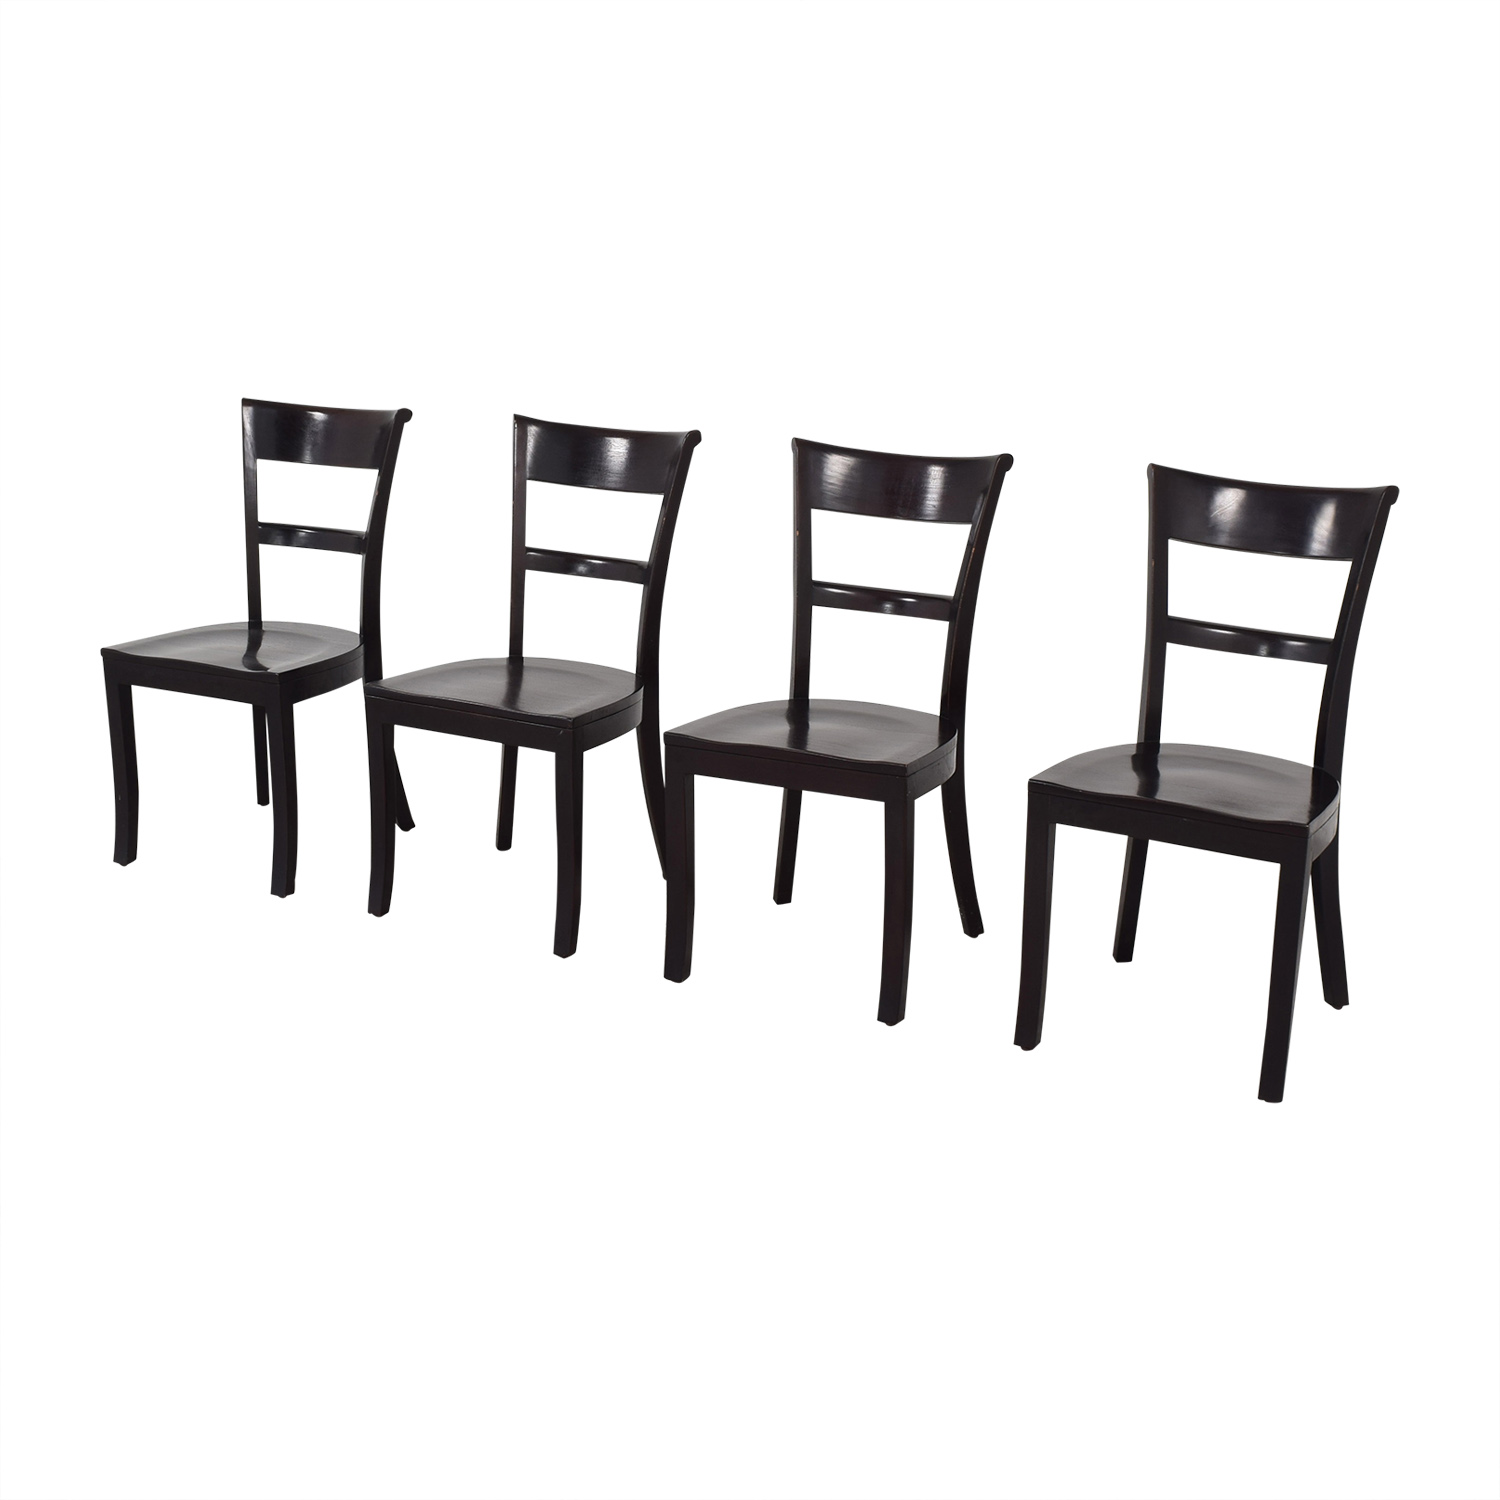 Crate & Barrel Crate & Barrel Dining Side Chairs on sale